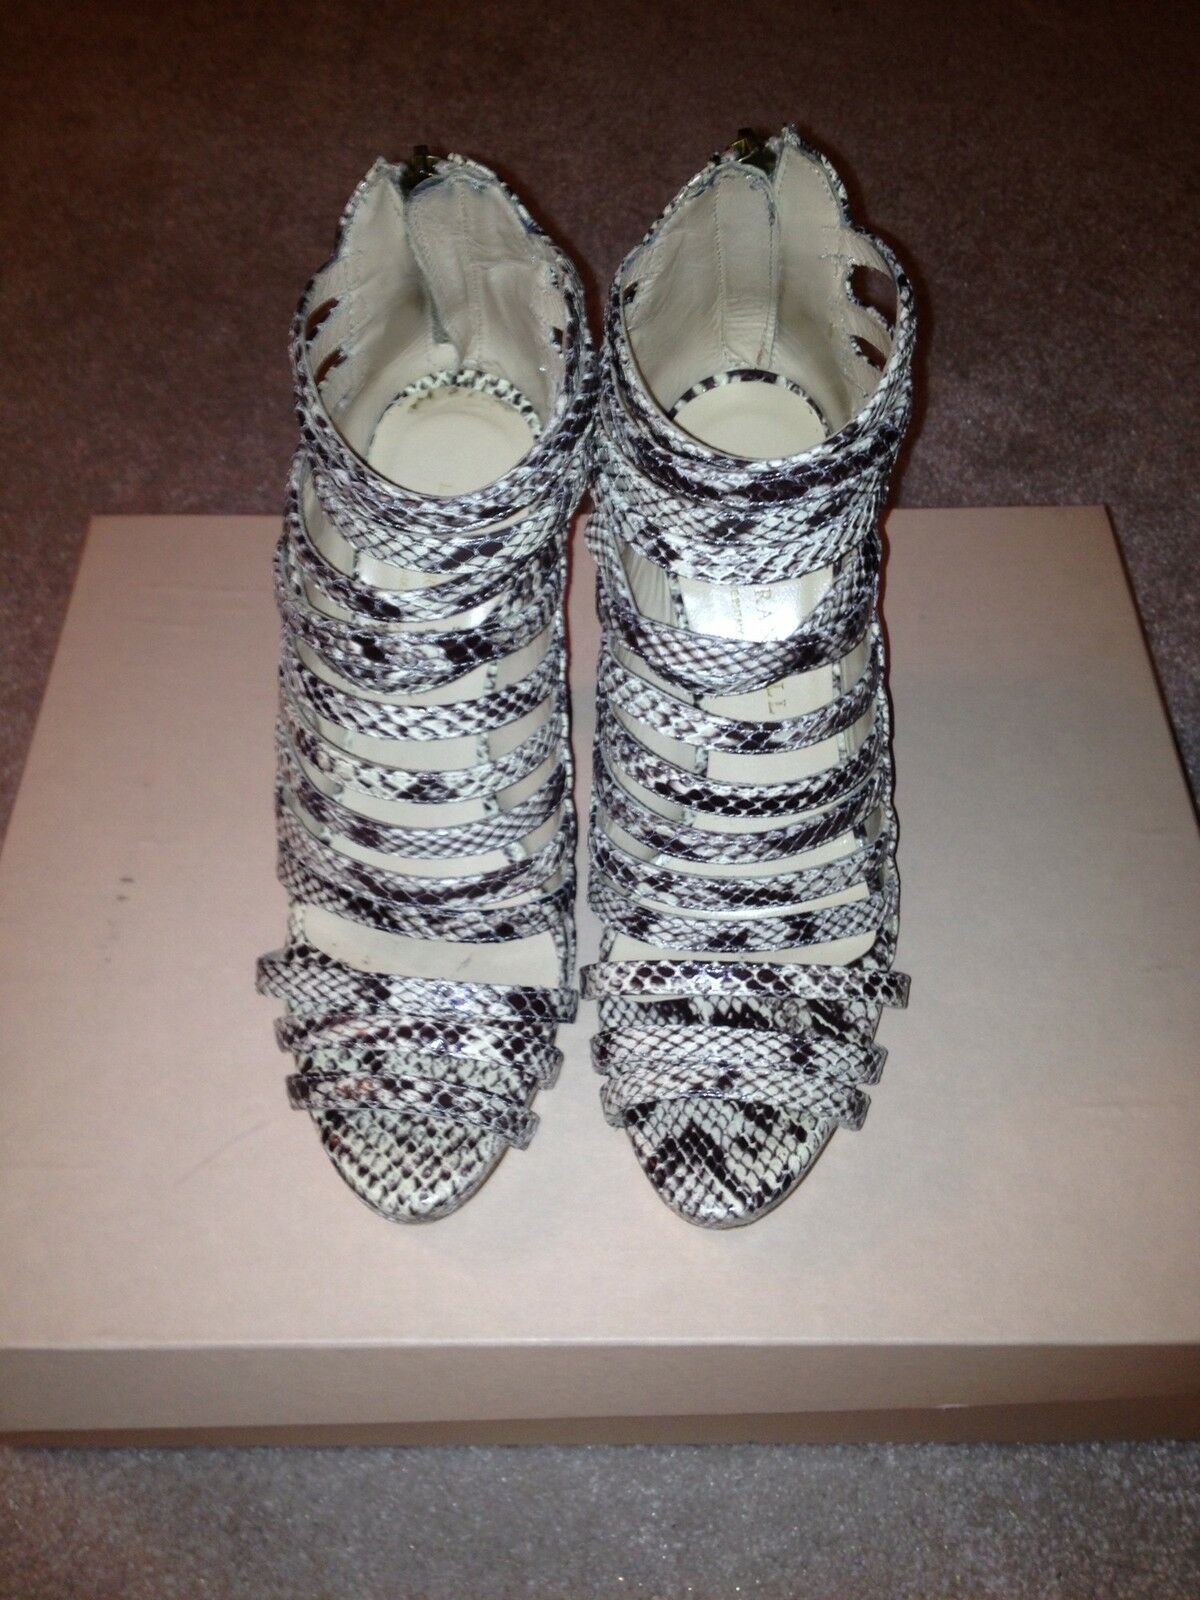 nuovo di marca Loeffler Randall Mabel Snake Embossed Embossed Embossed Very Strappy Open Toe avvioies Sz 6.5  outlet